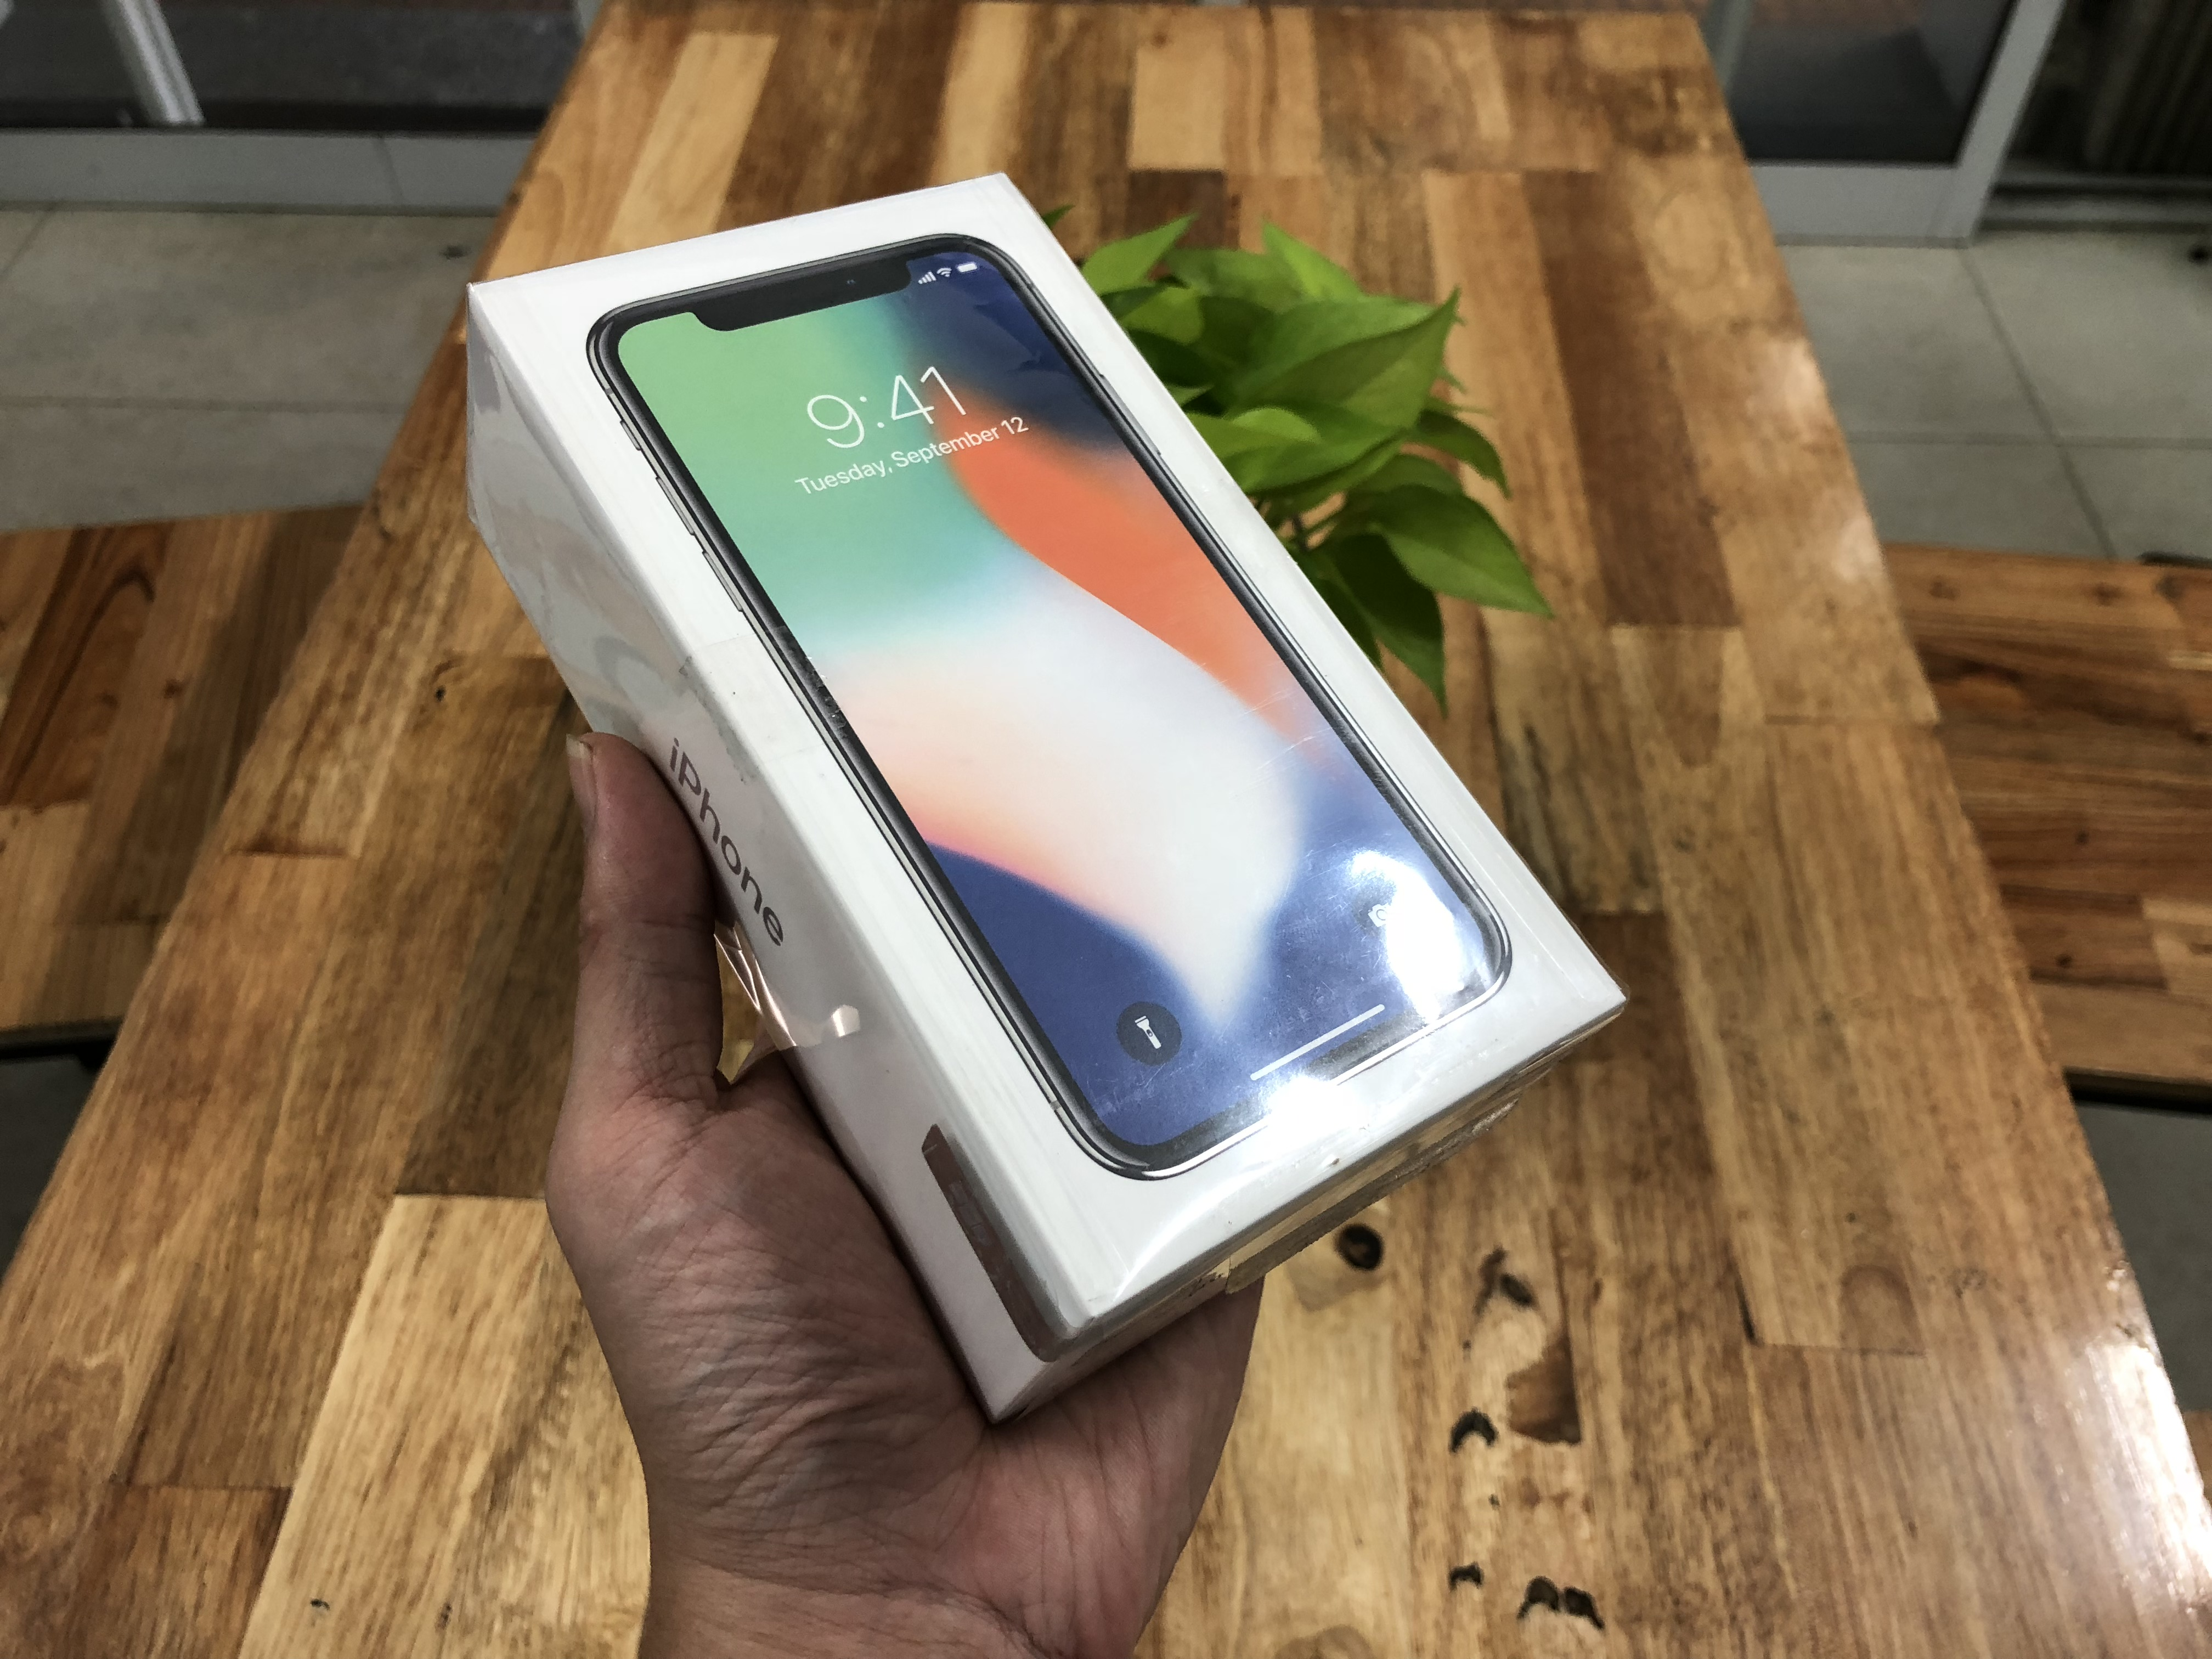 3 IPhone X 64Gb Trắng FPT Vn/a Mới 100  tại 2C MOBILE